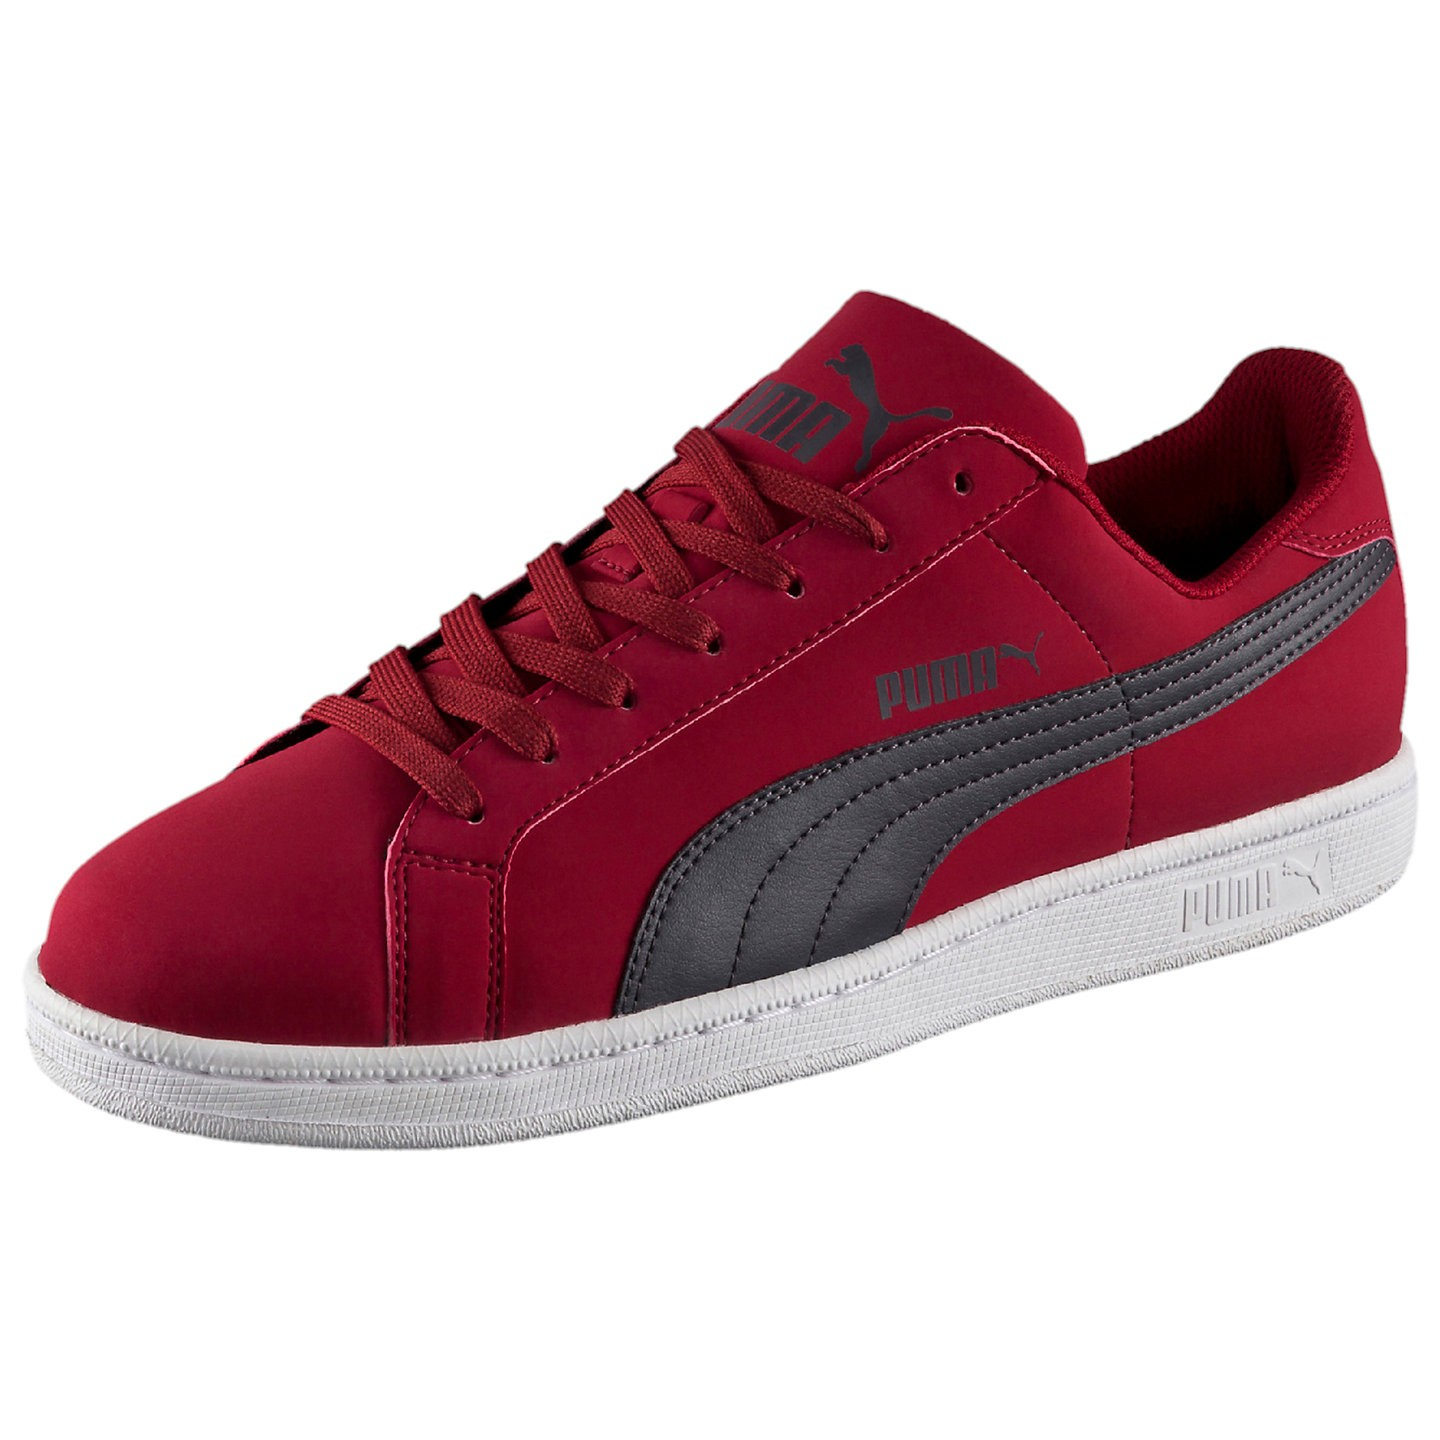 Men's Smash Buck Rio Red/Periscope 35675310 Economical, stylish, and eye-catching shoes